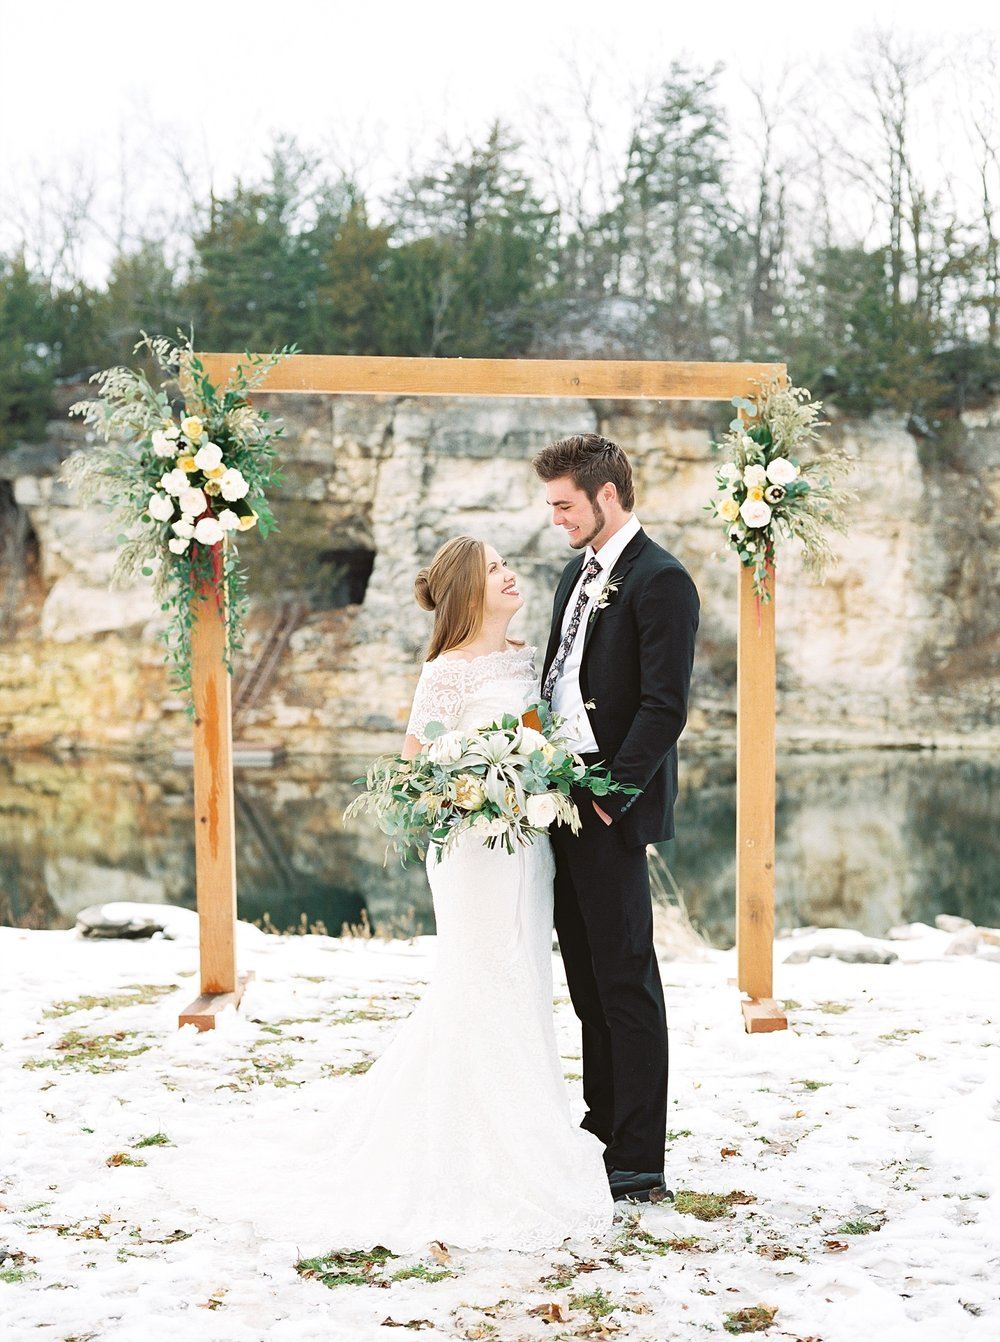 Snowy Winter Wedding at Wildcliff Events Lake With Earthy Jewel Tones and Organic Refined Style by Kelsi Kliethermes Photography Kansas City Missouri Wedding Photographer_0112.jpg